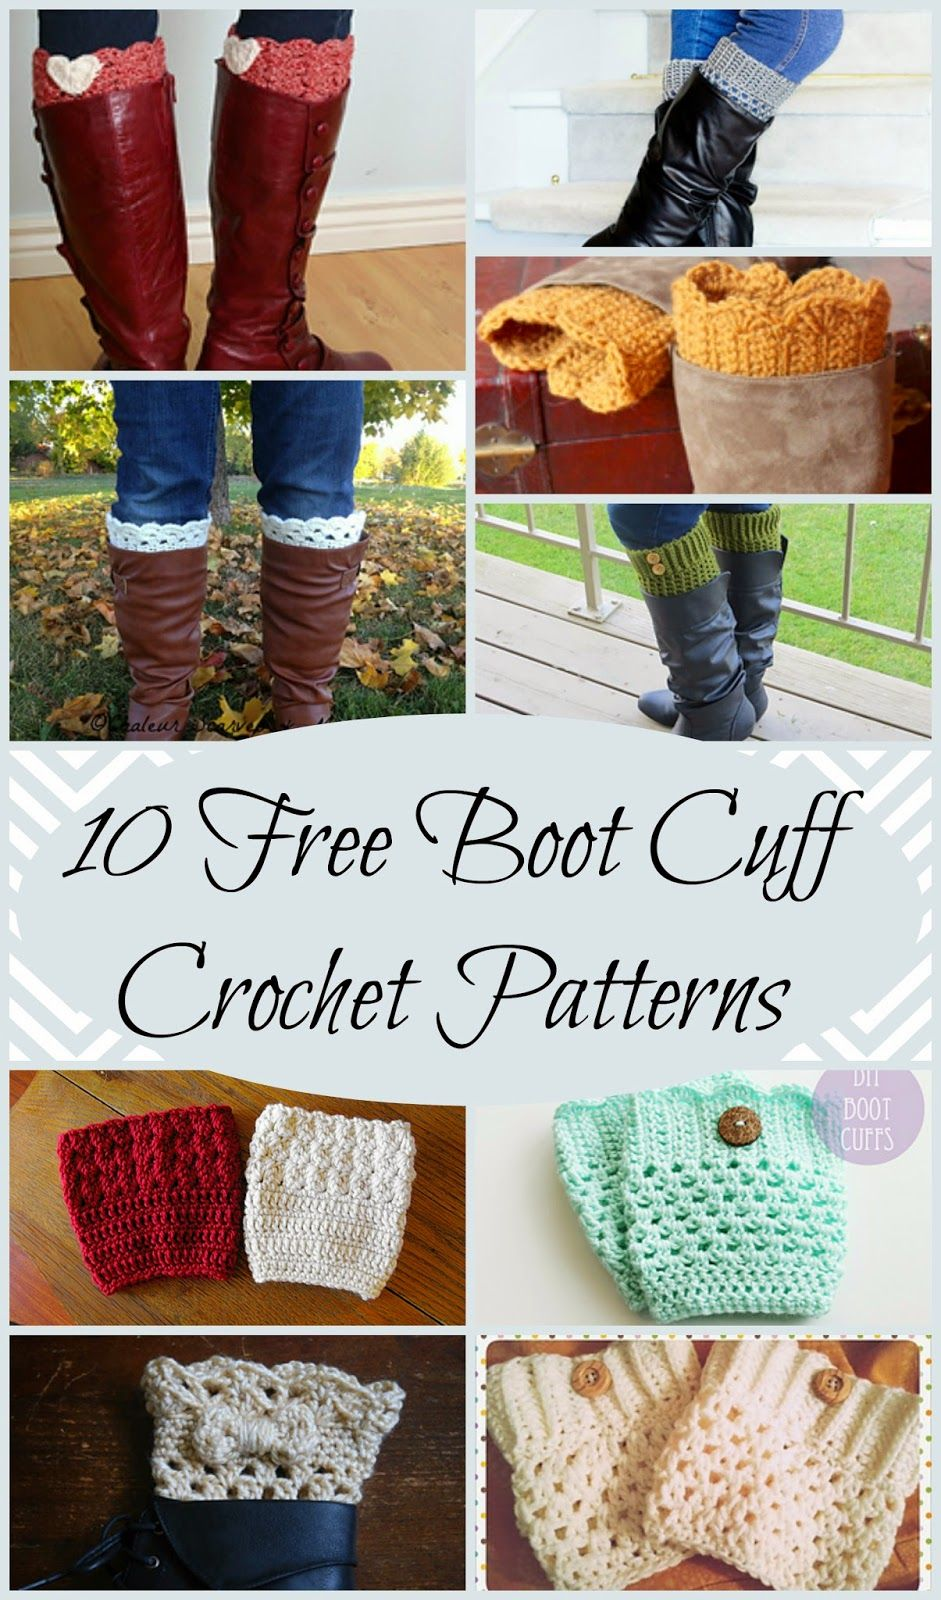 10 Free Boot Cuff Crochet Patterns perfect for a quick and easy ...